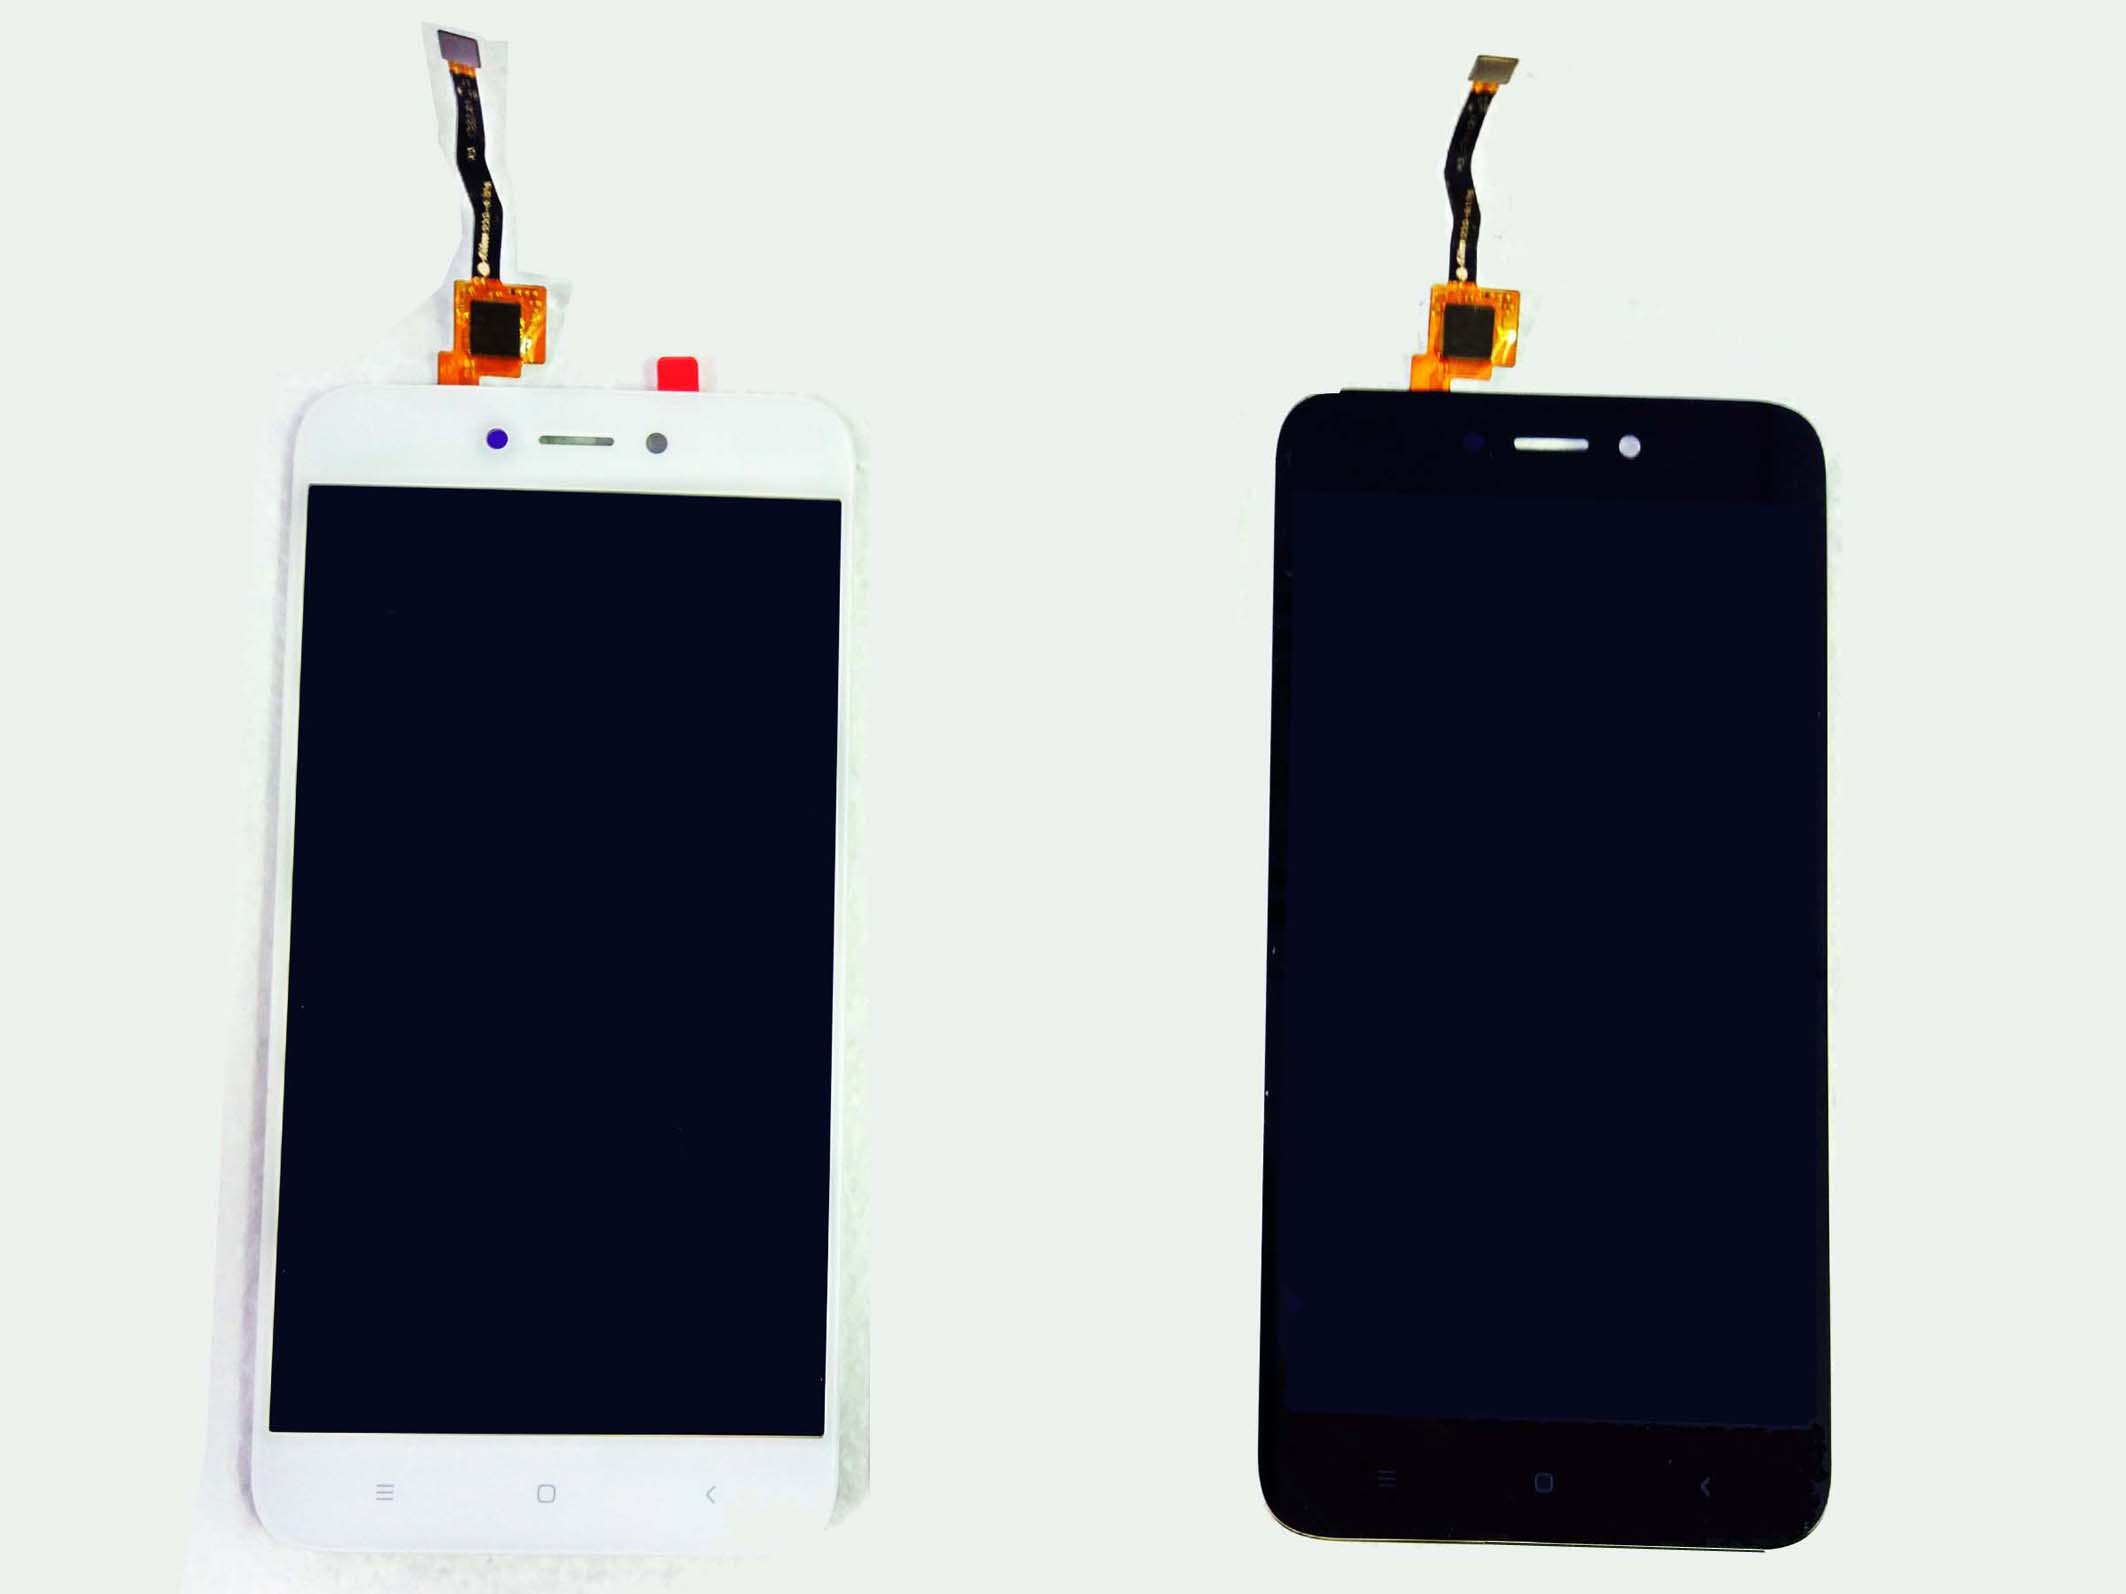 Dragon T Repair Parts Screen Assembly Replacement Flex Cable Xiaomi Redmi 3 2 16gb Silver 4g Original Lcd Display Touch And Digitizer For 5a Black White